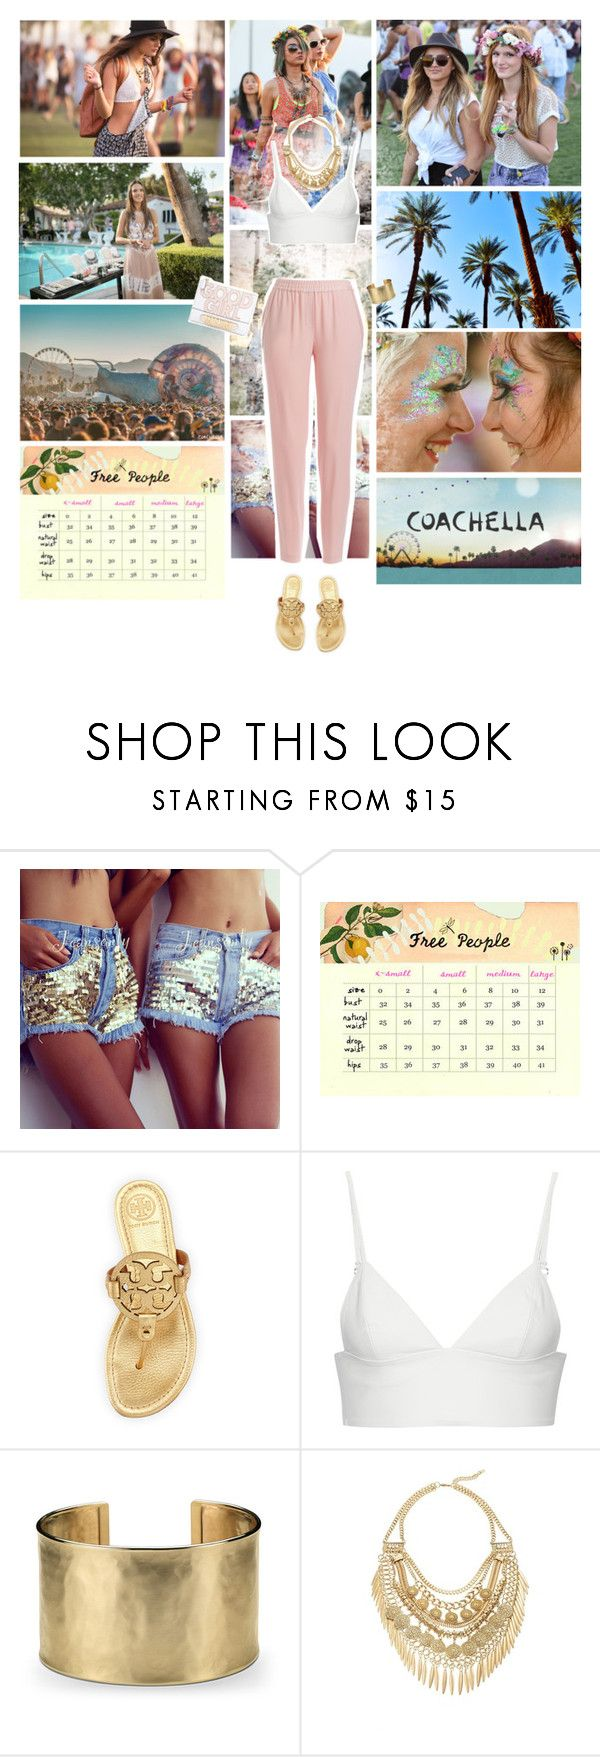 """""""Take me to Coachella <3"""" by mara-petcana ❤ liked on Polyvore featuring Levi's, Free People, Moschino, Tory Burch, T By Alexander Wang, Blue Nile, Cara, DKNY, coachella and coachellastyle"""